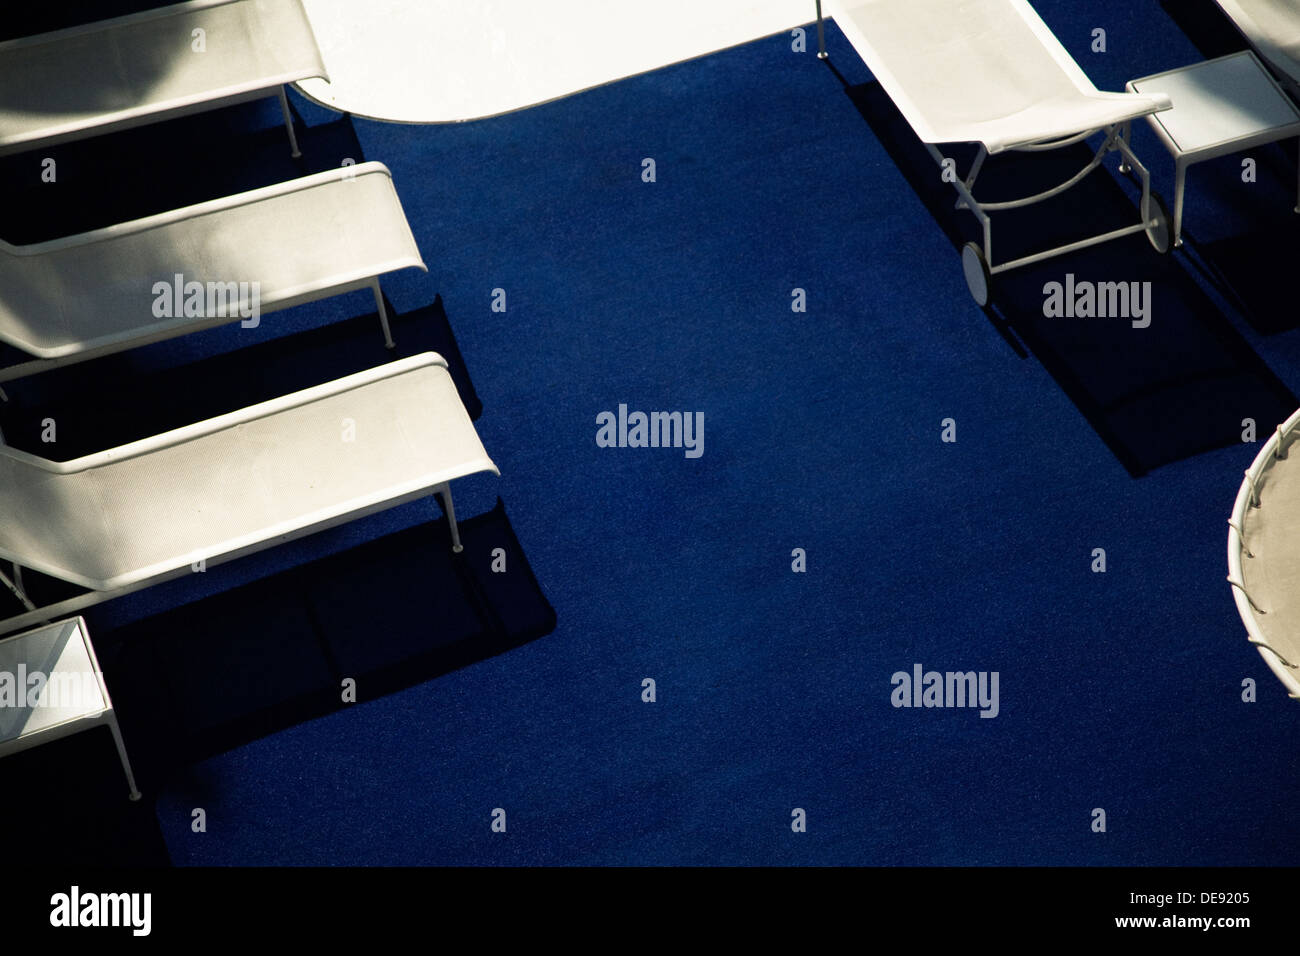 White Lounge Chairs Against Blue Carpet, High Angle View - Stock Image